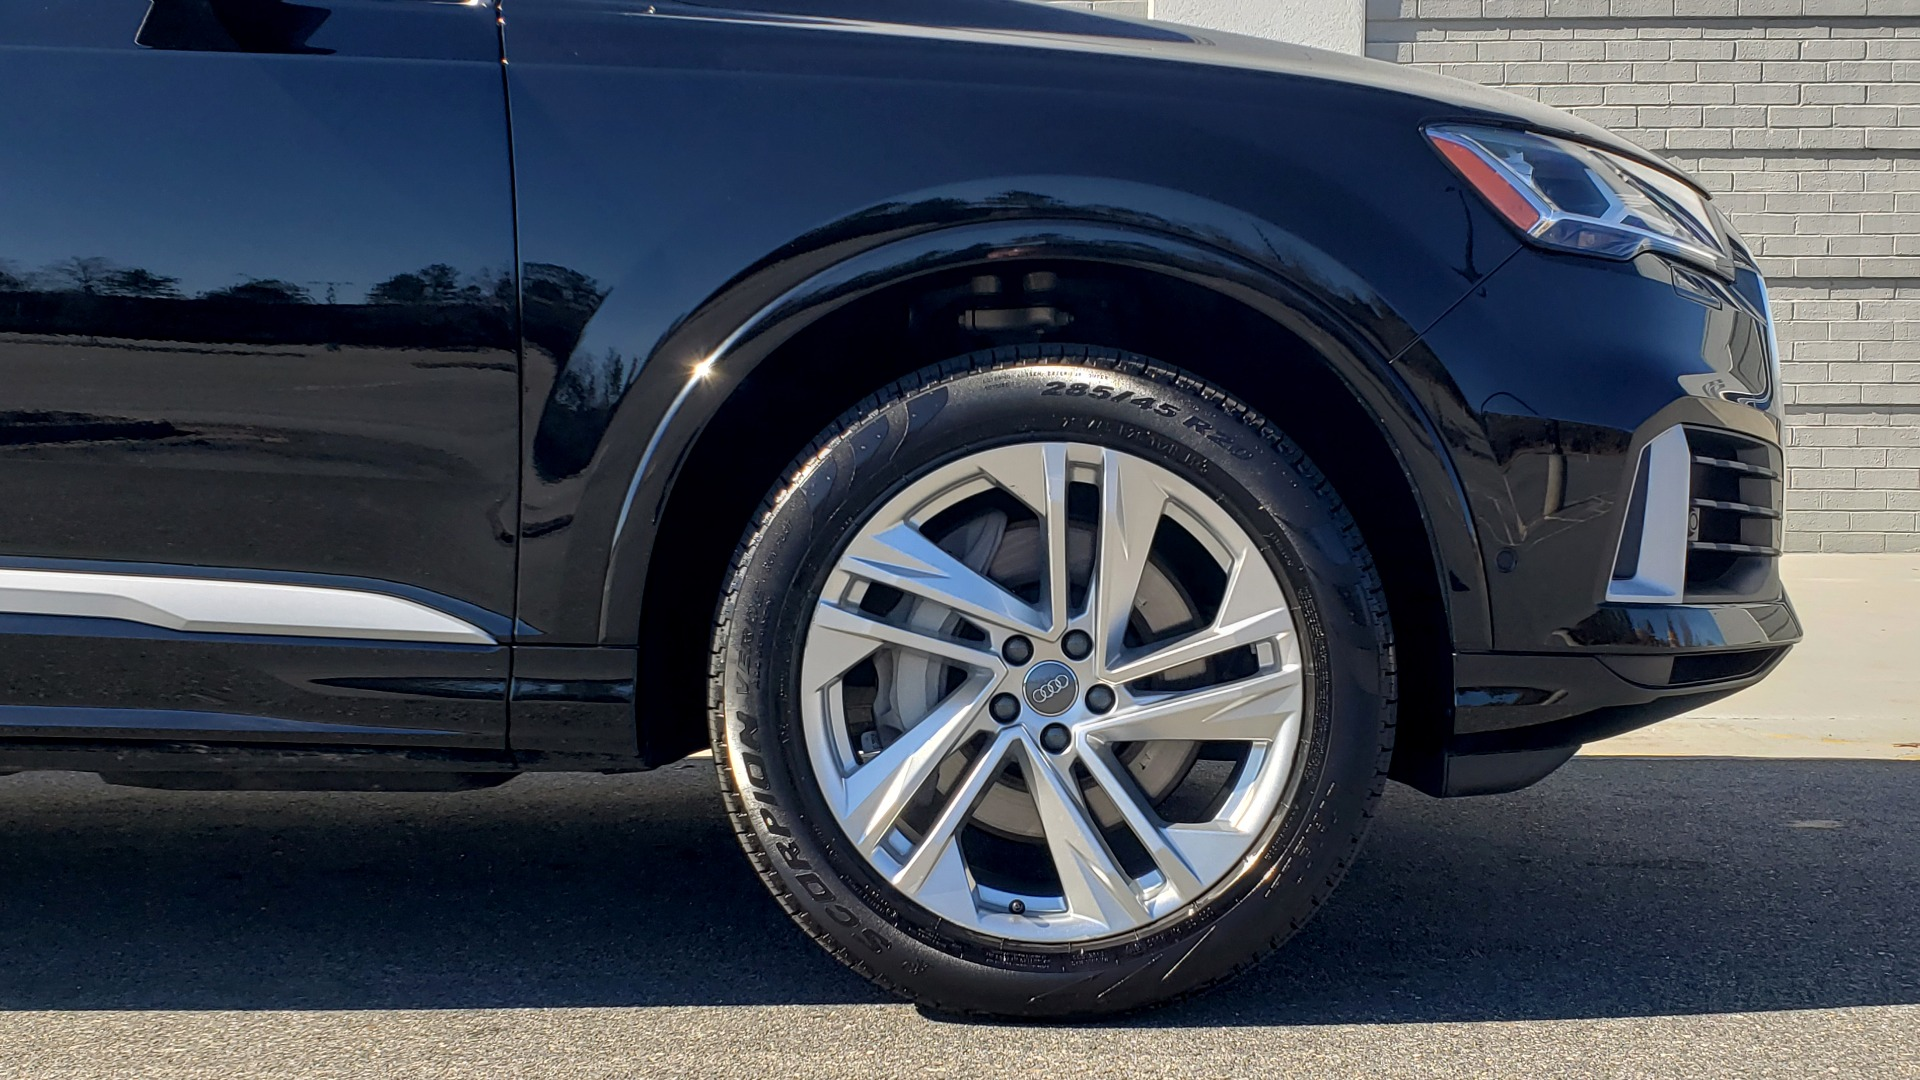 Used 2020 Audi Q7 PREMIUM PLUS / NAV / SUNROOF / 3-ROW / REARVIEW for sale $50,695 at Formula Imports in Charlotte NC 28227 89